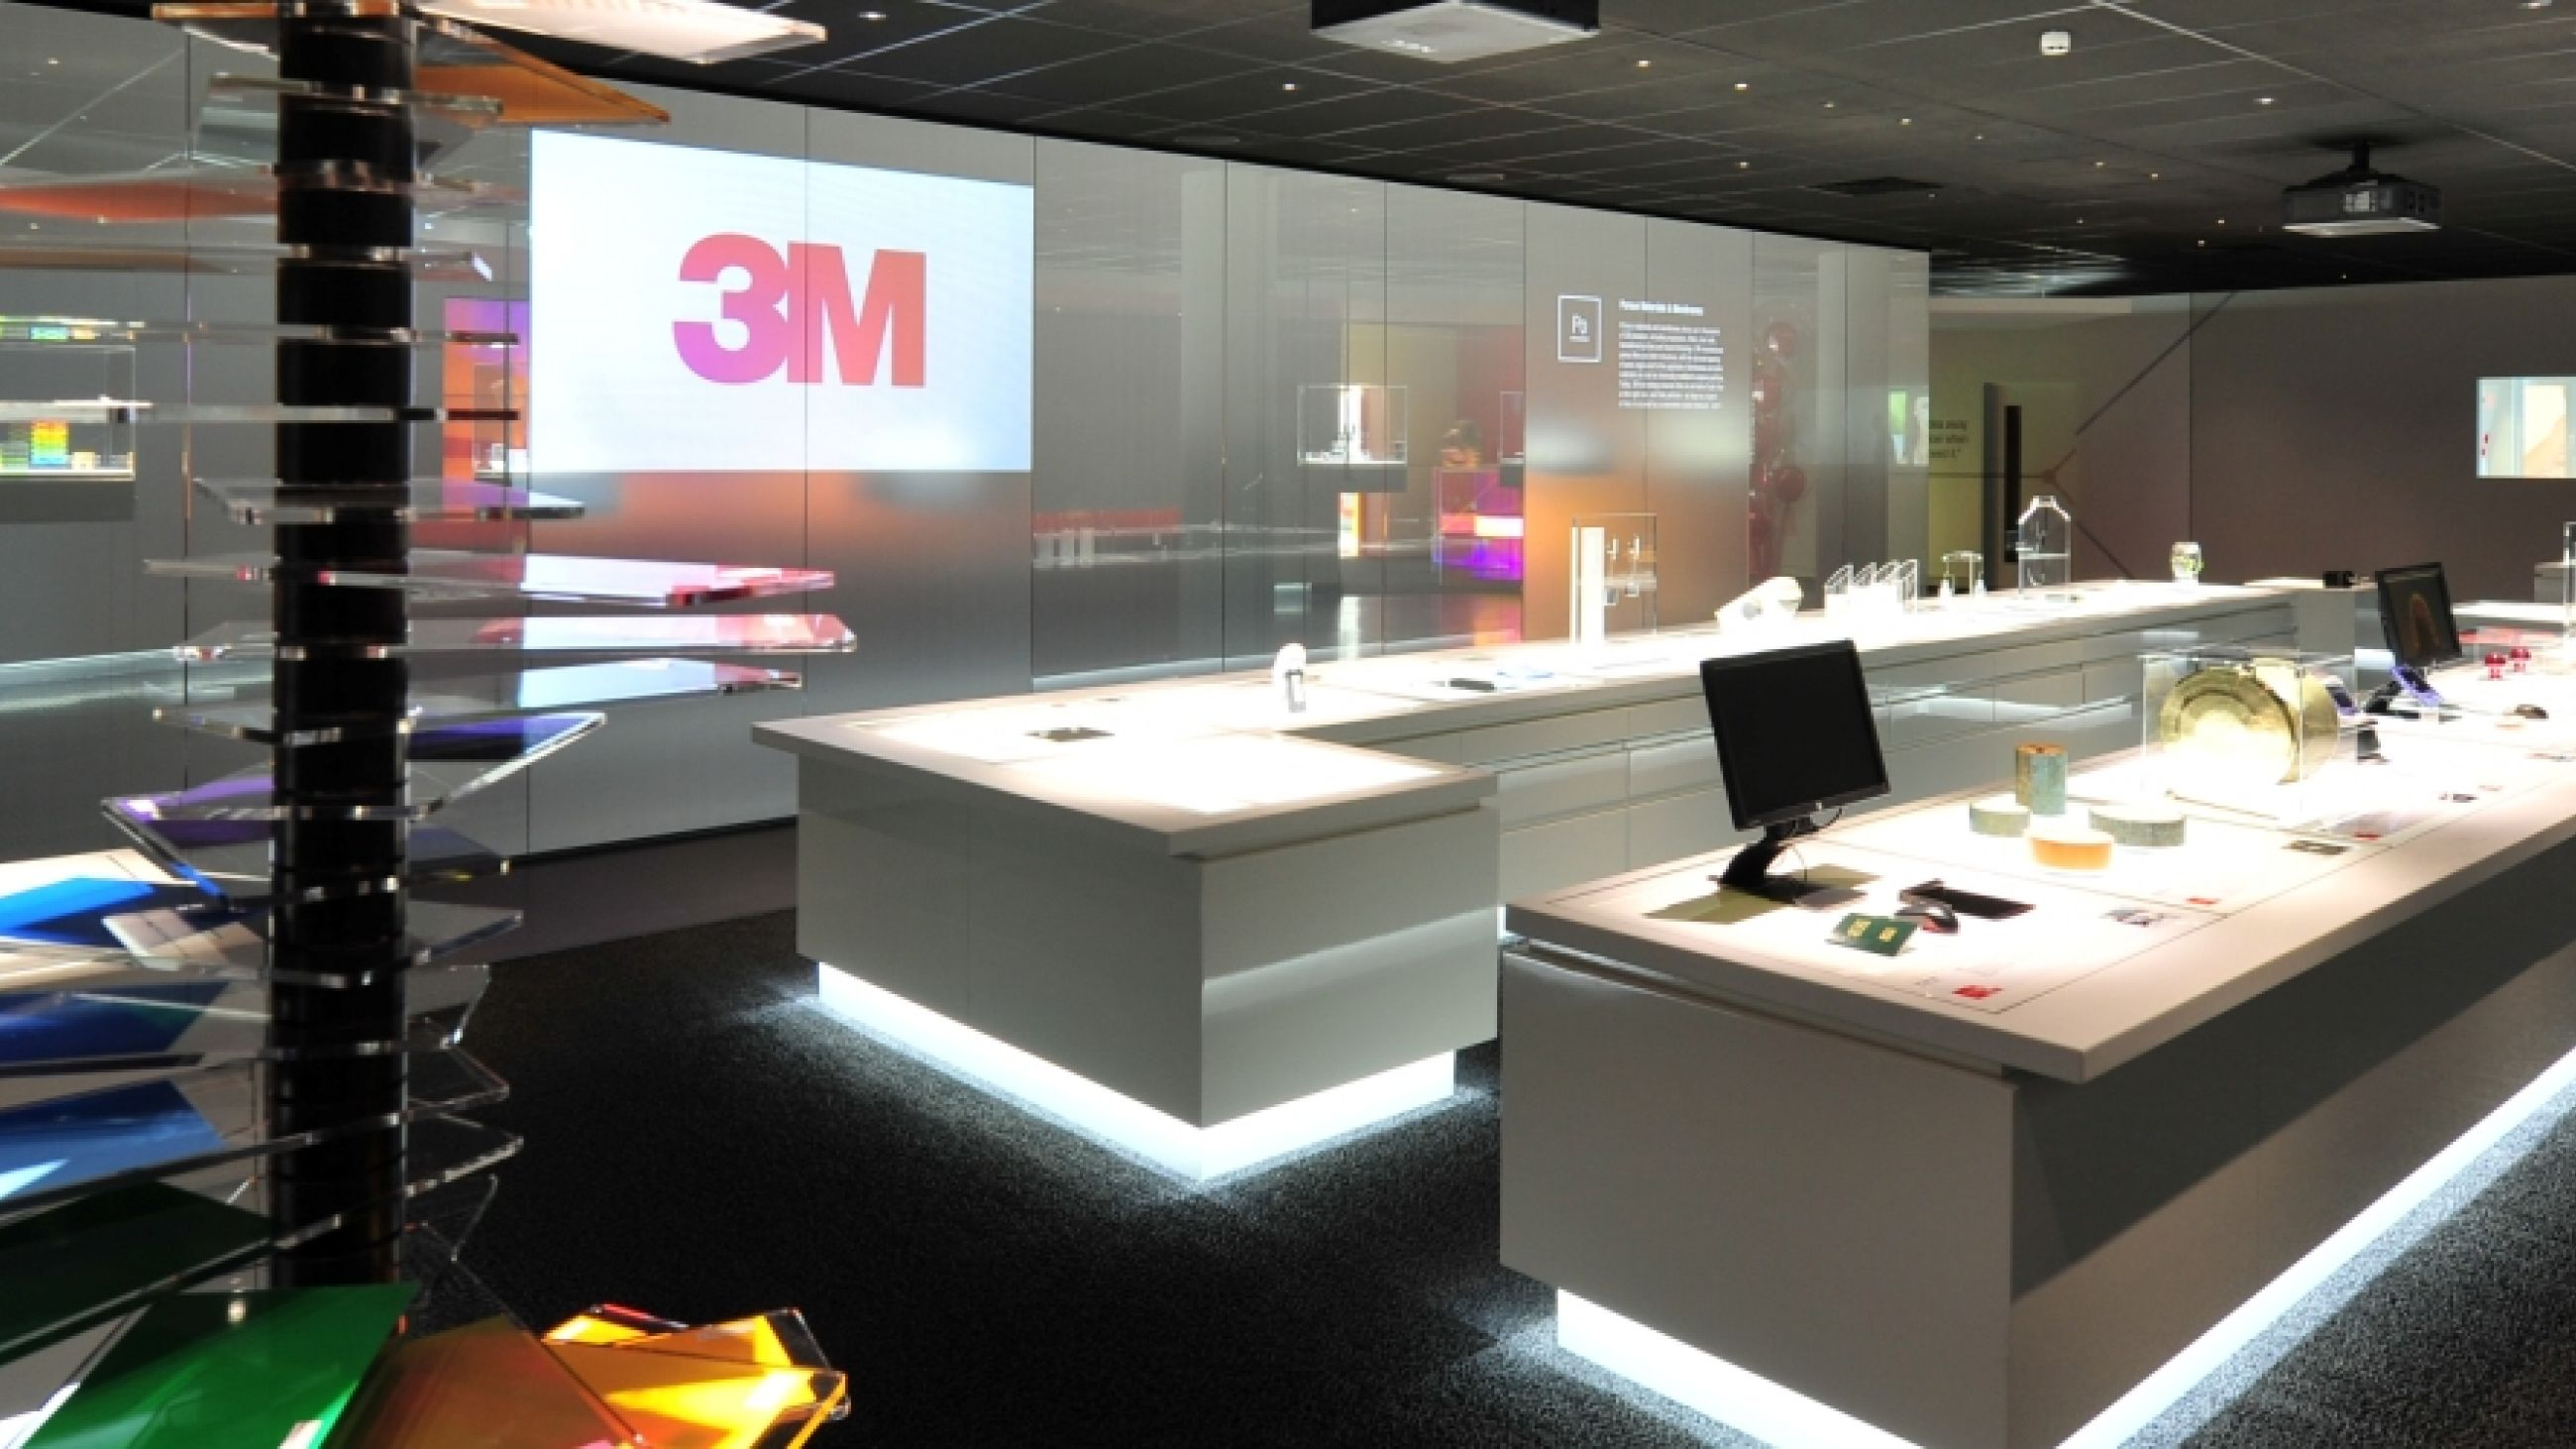 Inspiring STEM subjects at 3M's Innovation Centre